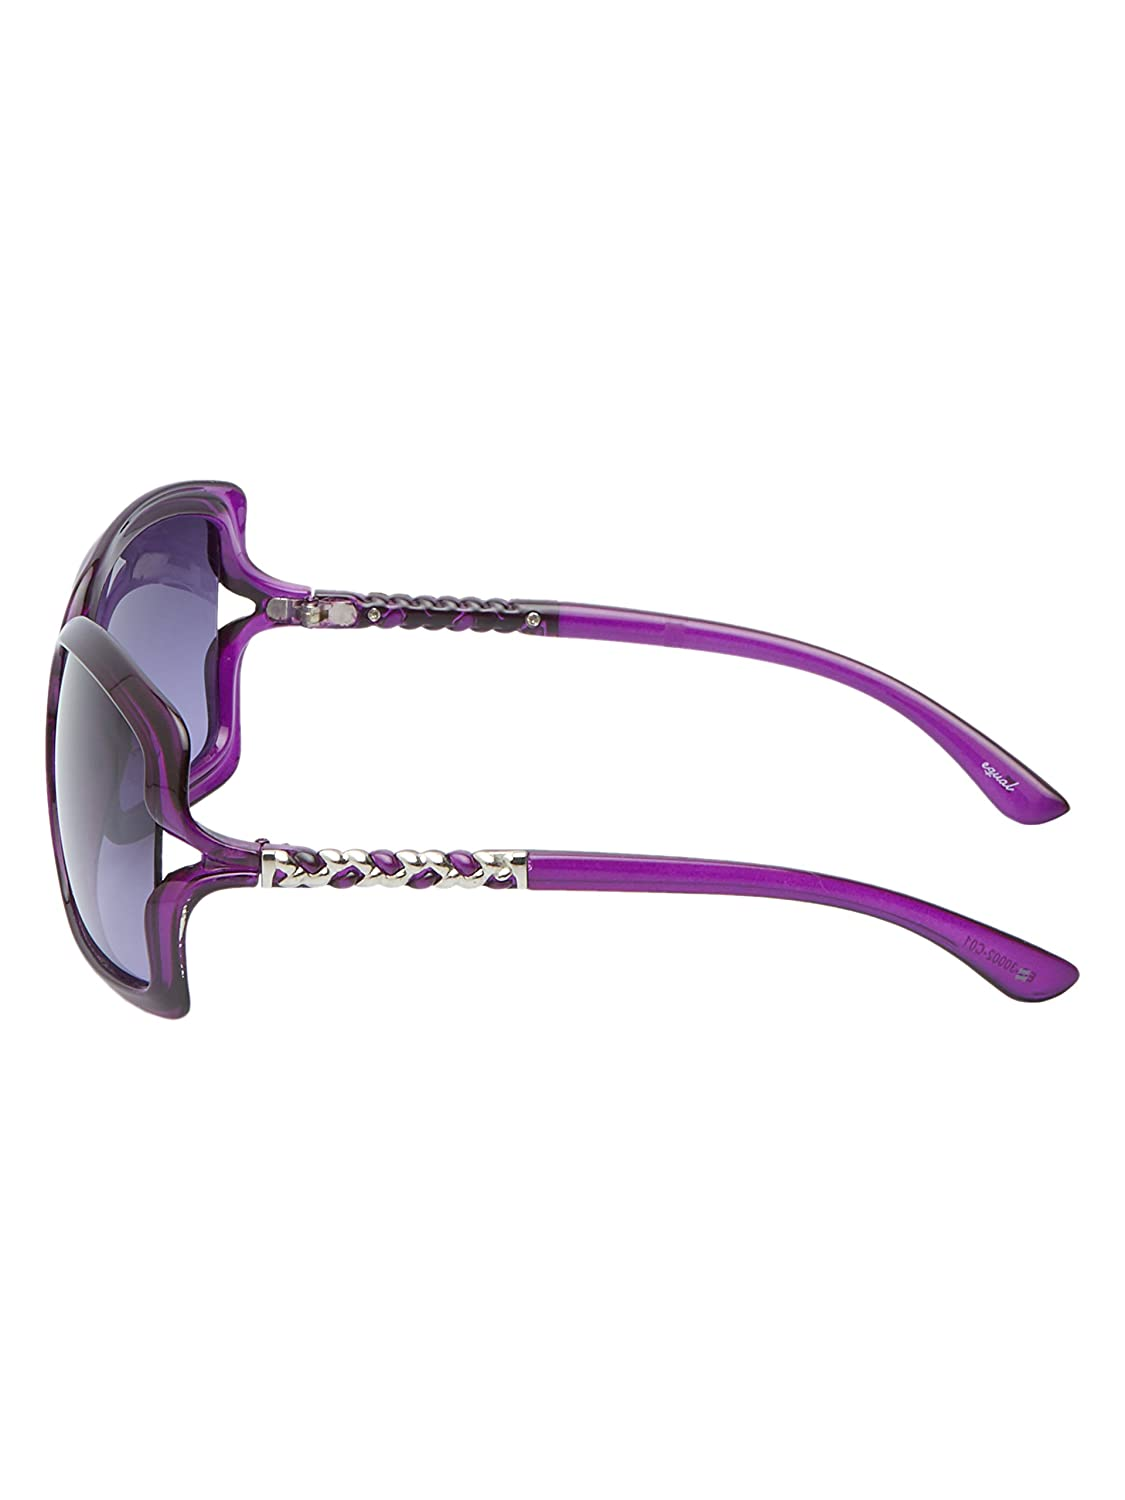 59b7cca90ce Vast UV Protection Square Over size women Sunglasses (EQ-30002-C01)   Amazon.in  Clothing   Accessories